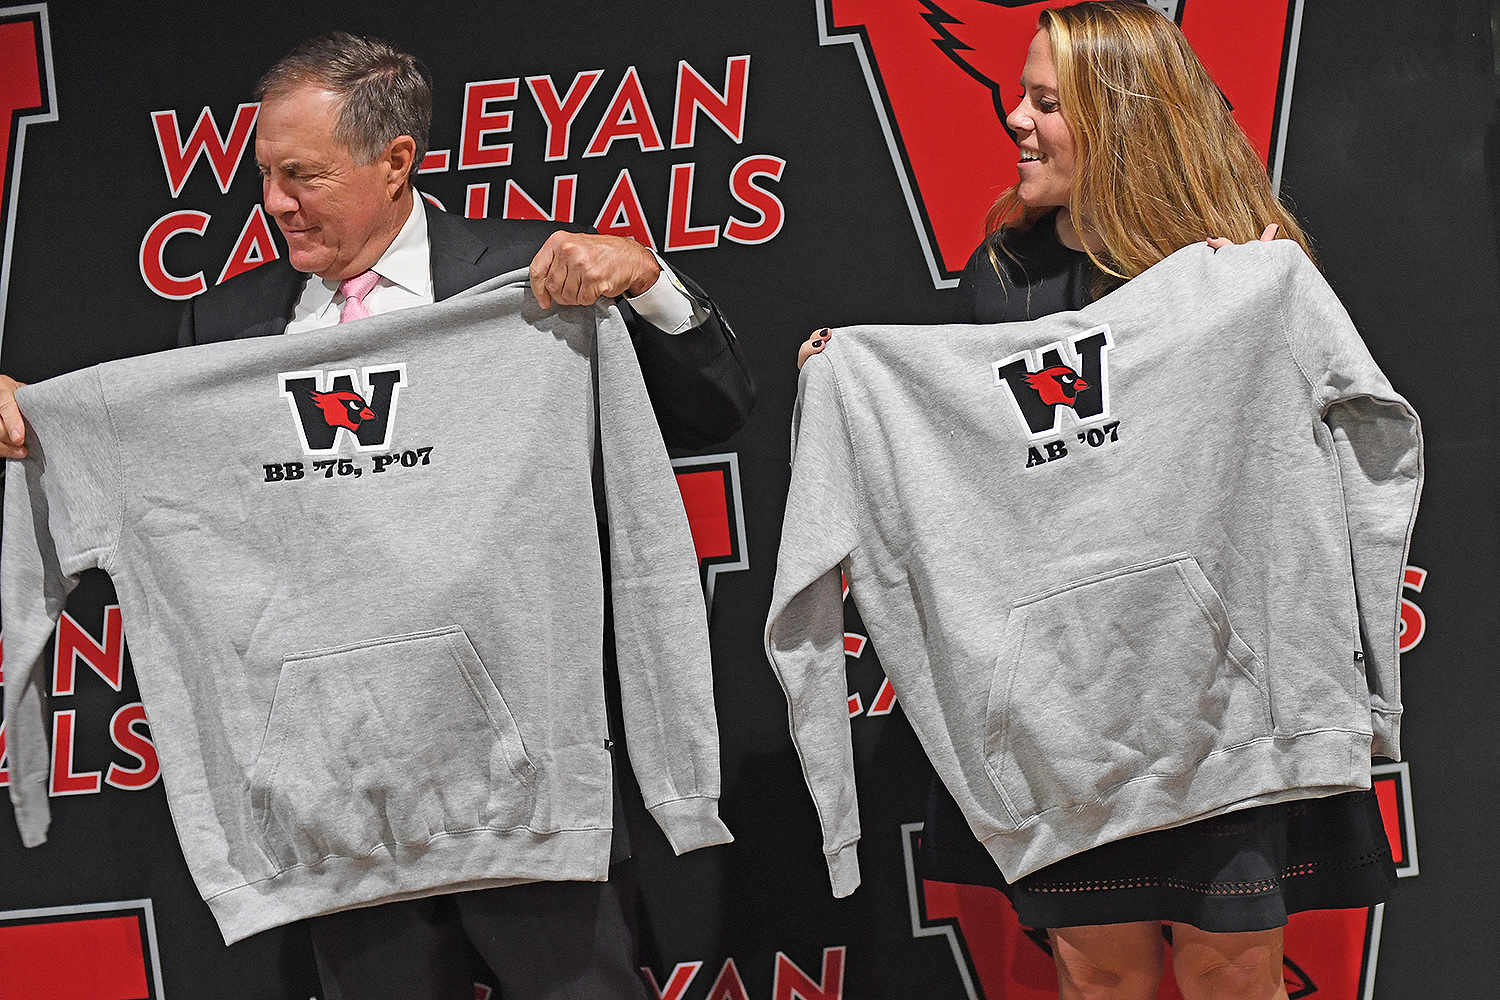 Mike Whalen, the Frank V. Sica Director of Athletics, presented personalized sweatshirts to Bill and Amanda Belichick.